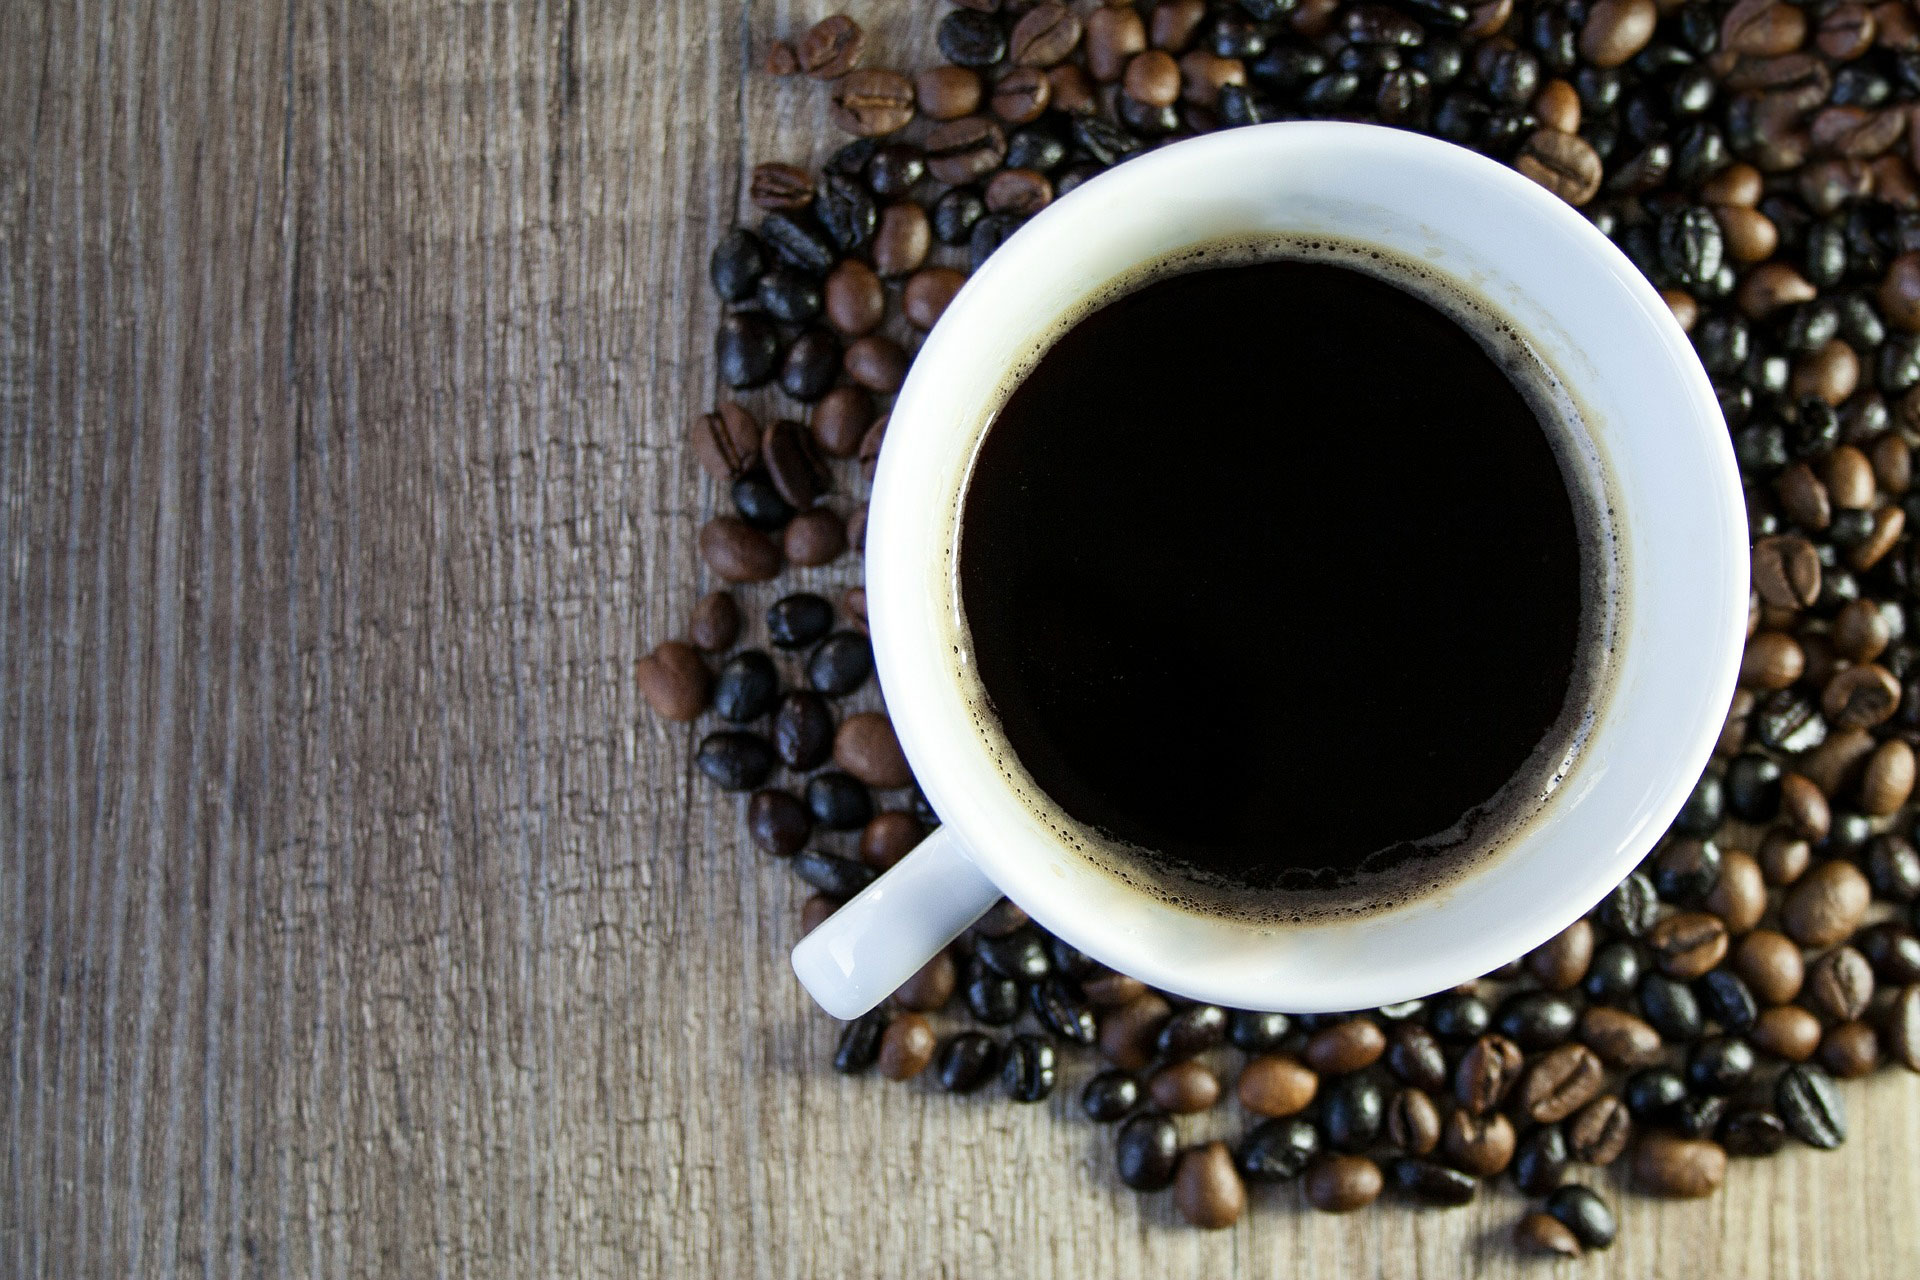 About acidity in organic coffee